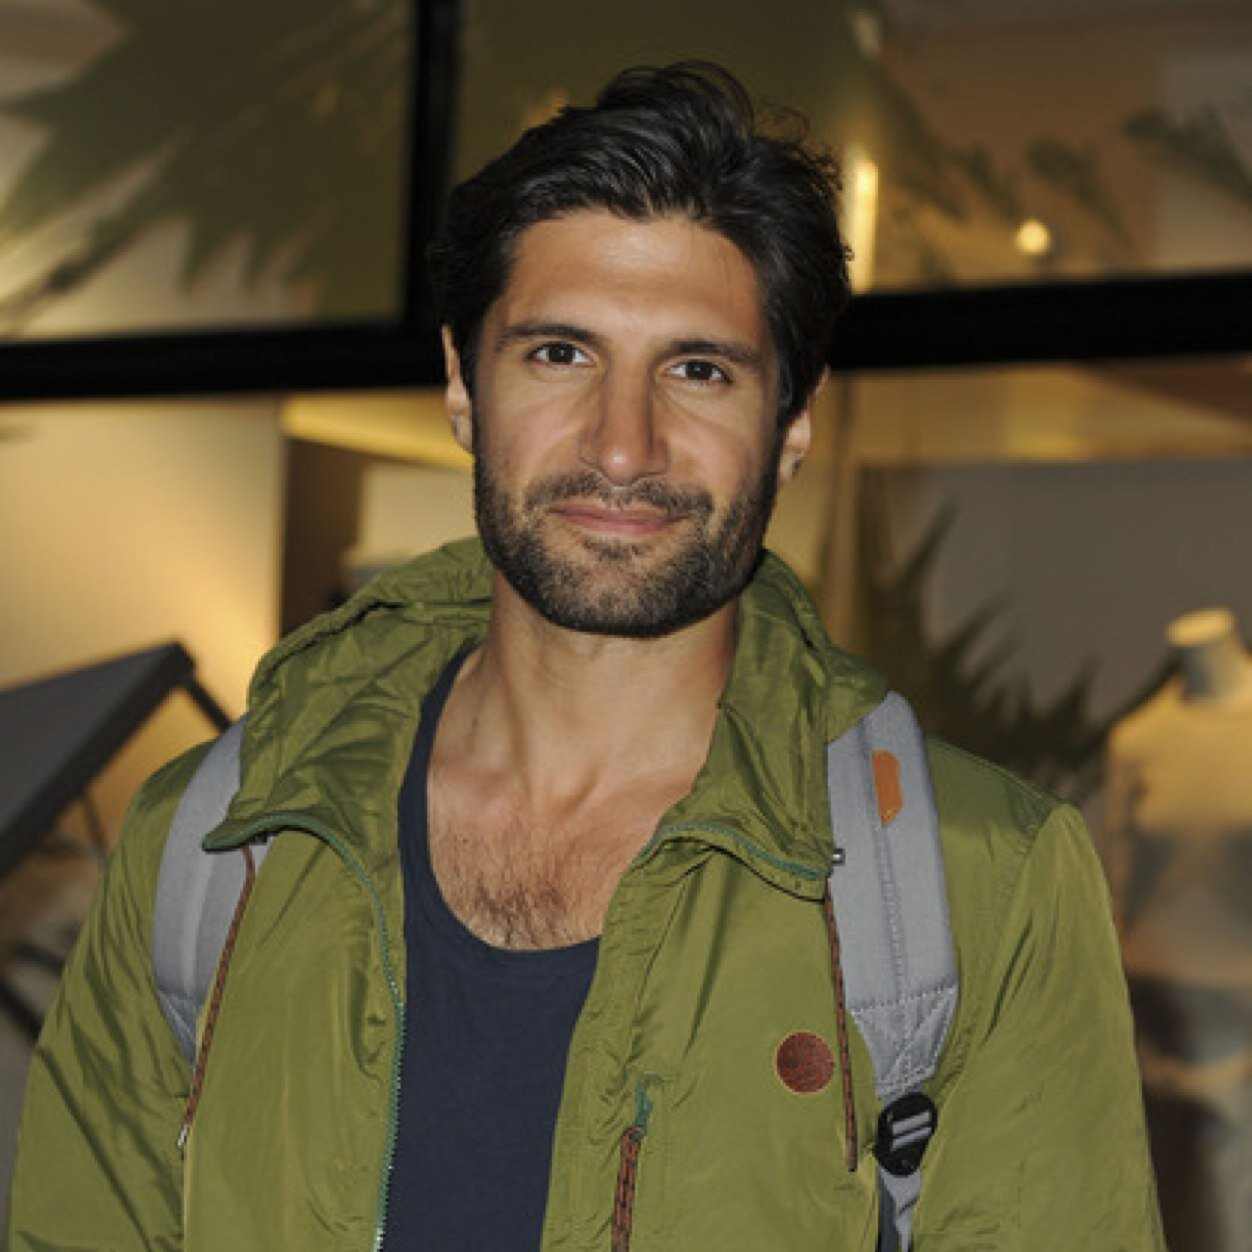 kayvan novak four lionskayvan novak skins, kayvan novak four lions, kayvan novak instagram, kayvan novak height, kayvan novak, kayvan novak wife, kayvan novak married, kayvan novak biography, kayvan novak wiki, кайван новак, kayvan novak doctor who, kayvan novak imdb, kayvan novak twitter, kayvan novak net worth, kayvan novak movies and tv shows, kayvan novak shirtless, kayvan novak paddy power, kayvan novak spooks, kayvan novak interview, kayvan novak muslim